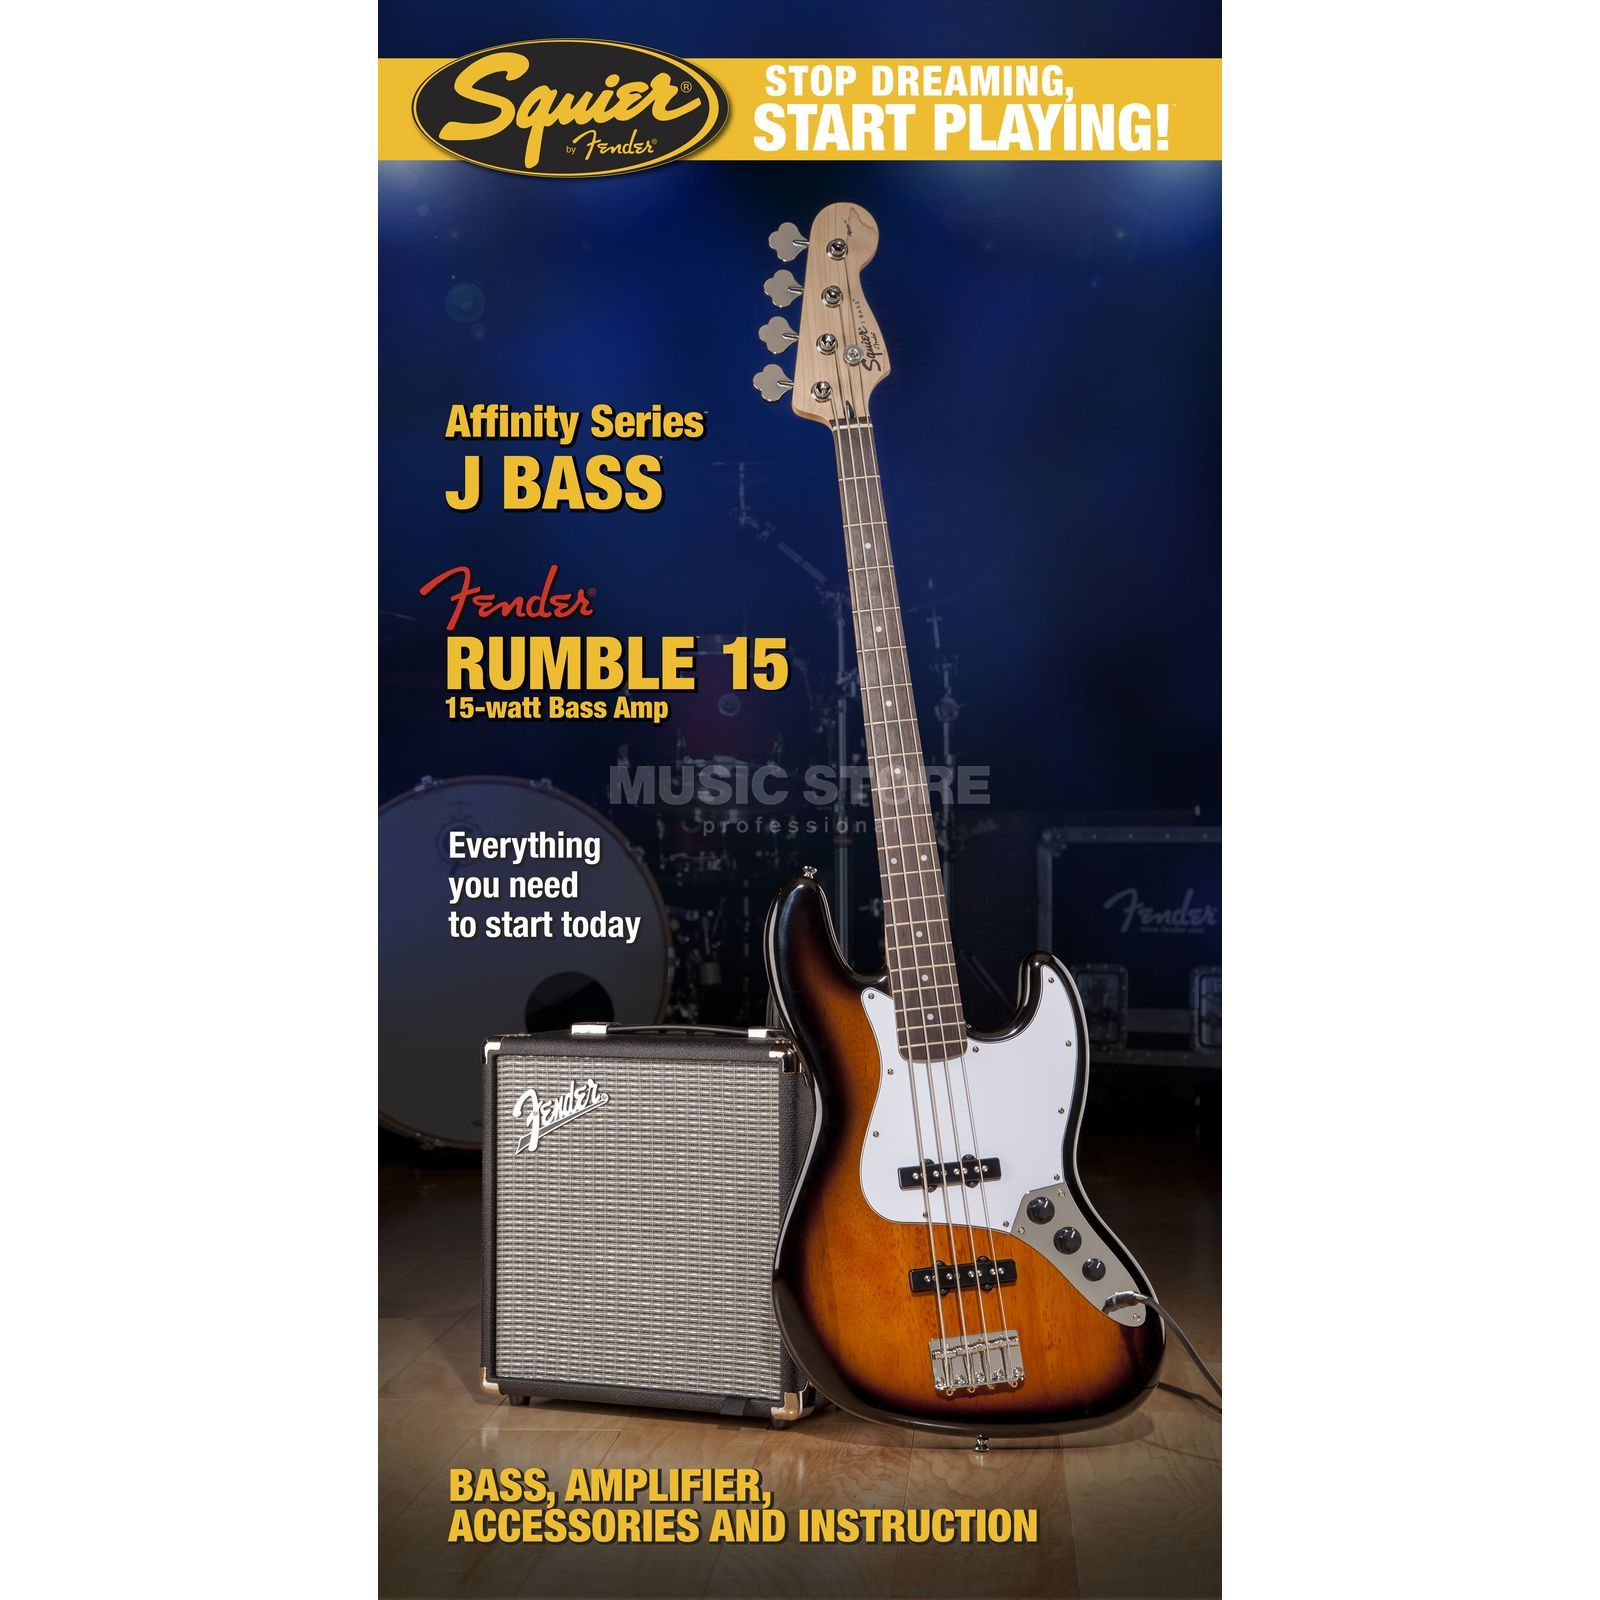 Fender Squier Affinity J-Bass+Rumble15 Pack Brown Sunburst Изображение товара